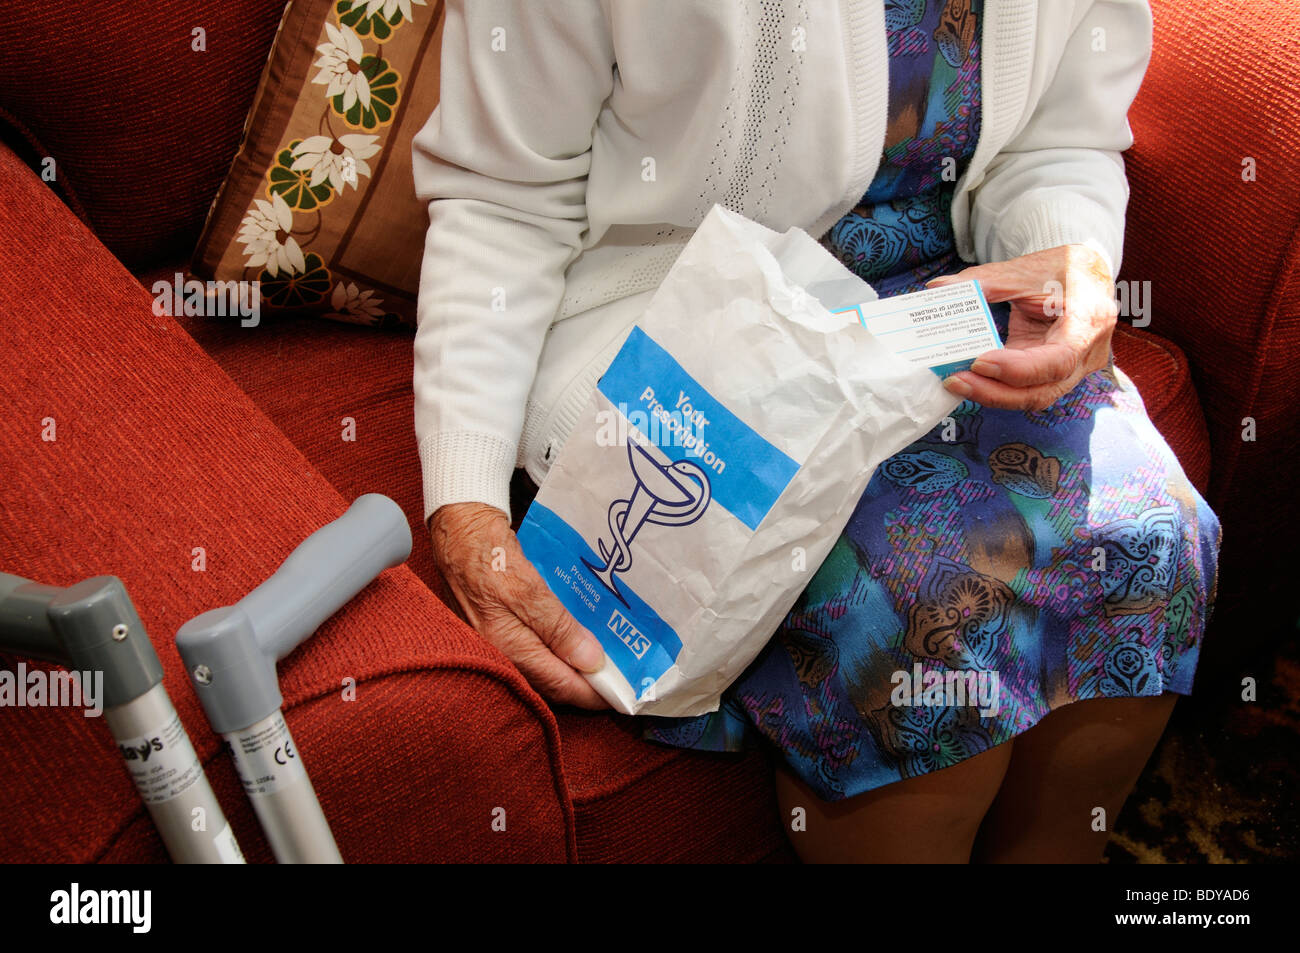 NHS prescription drugs being inspected by an old lady - Stock Image